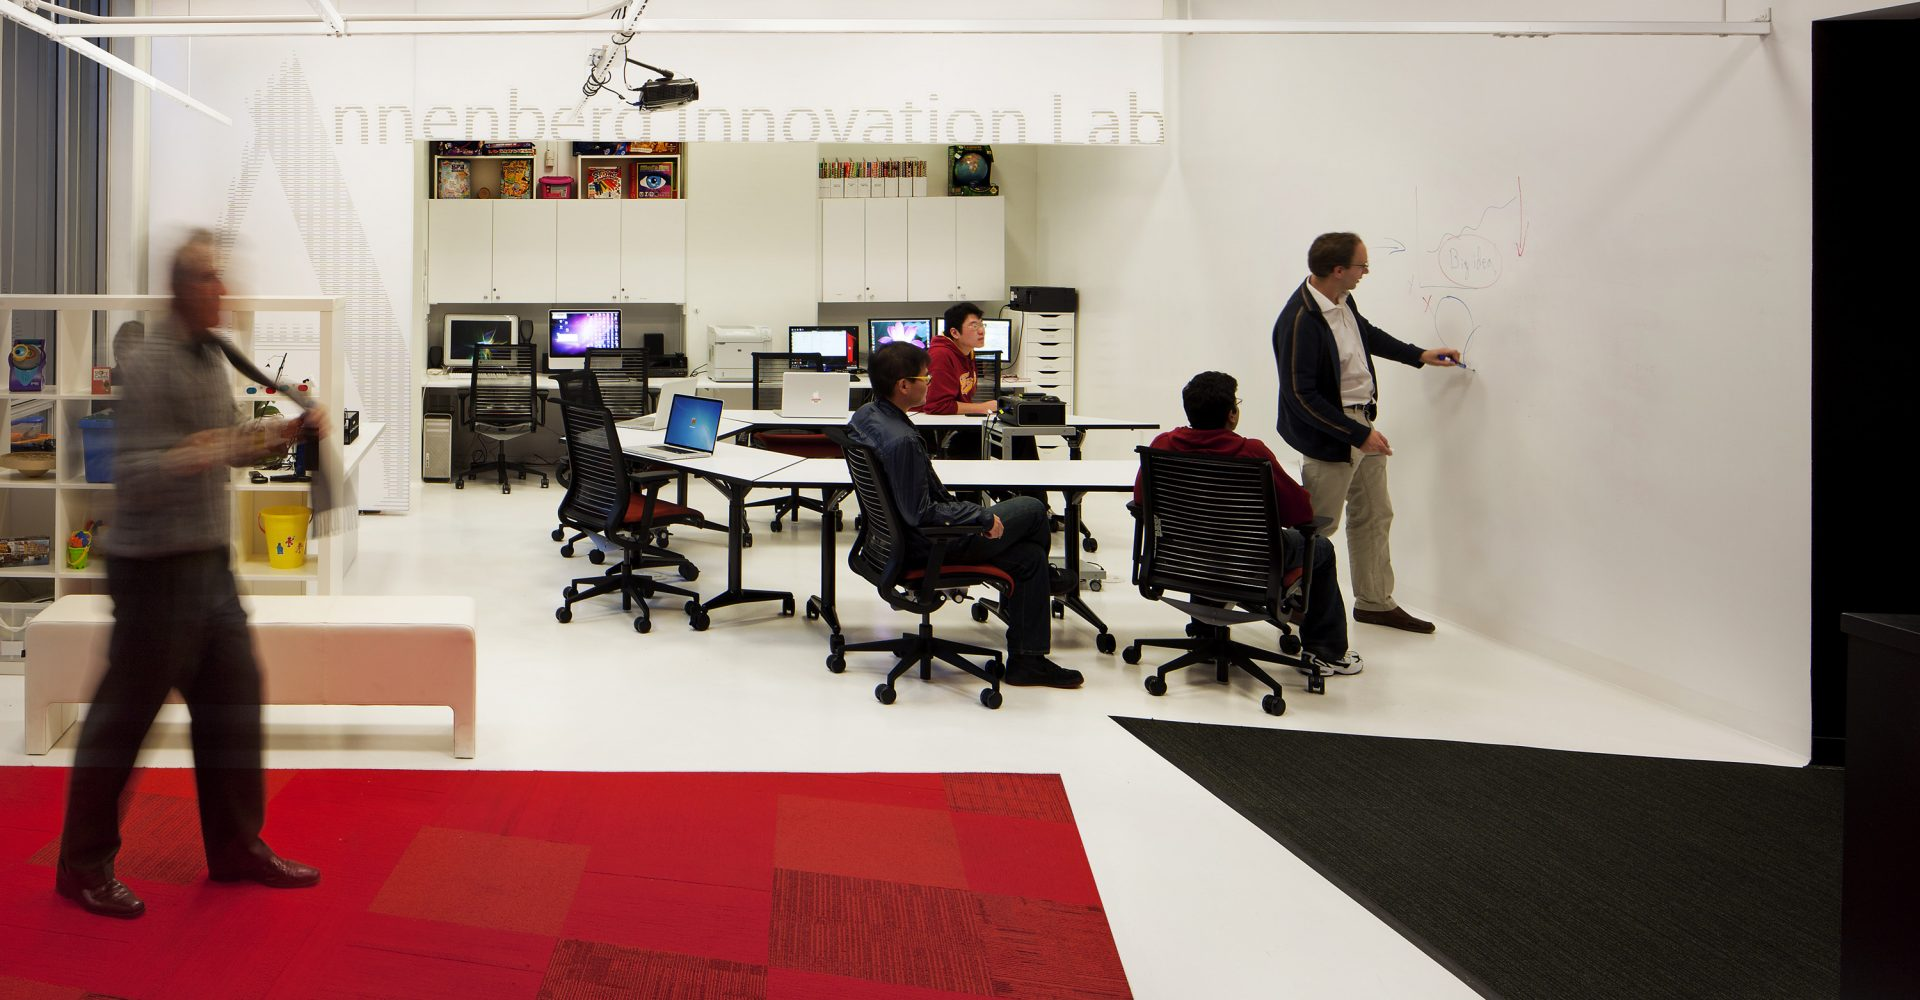 Lehrer Architects USC Annenberg Innovation Lab by Tom Bonner Photography Job ID 5770